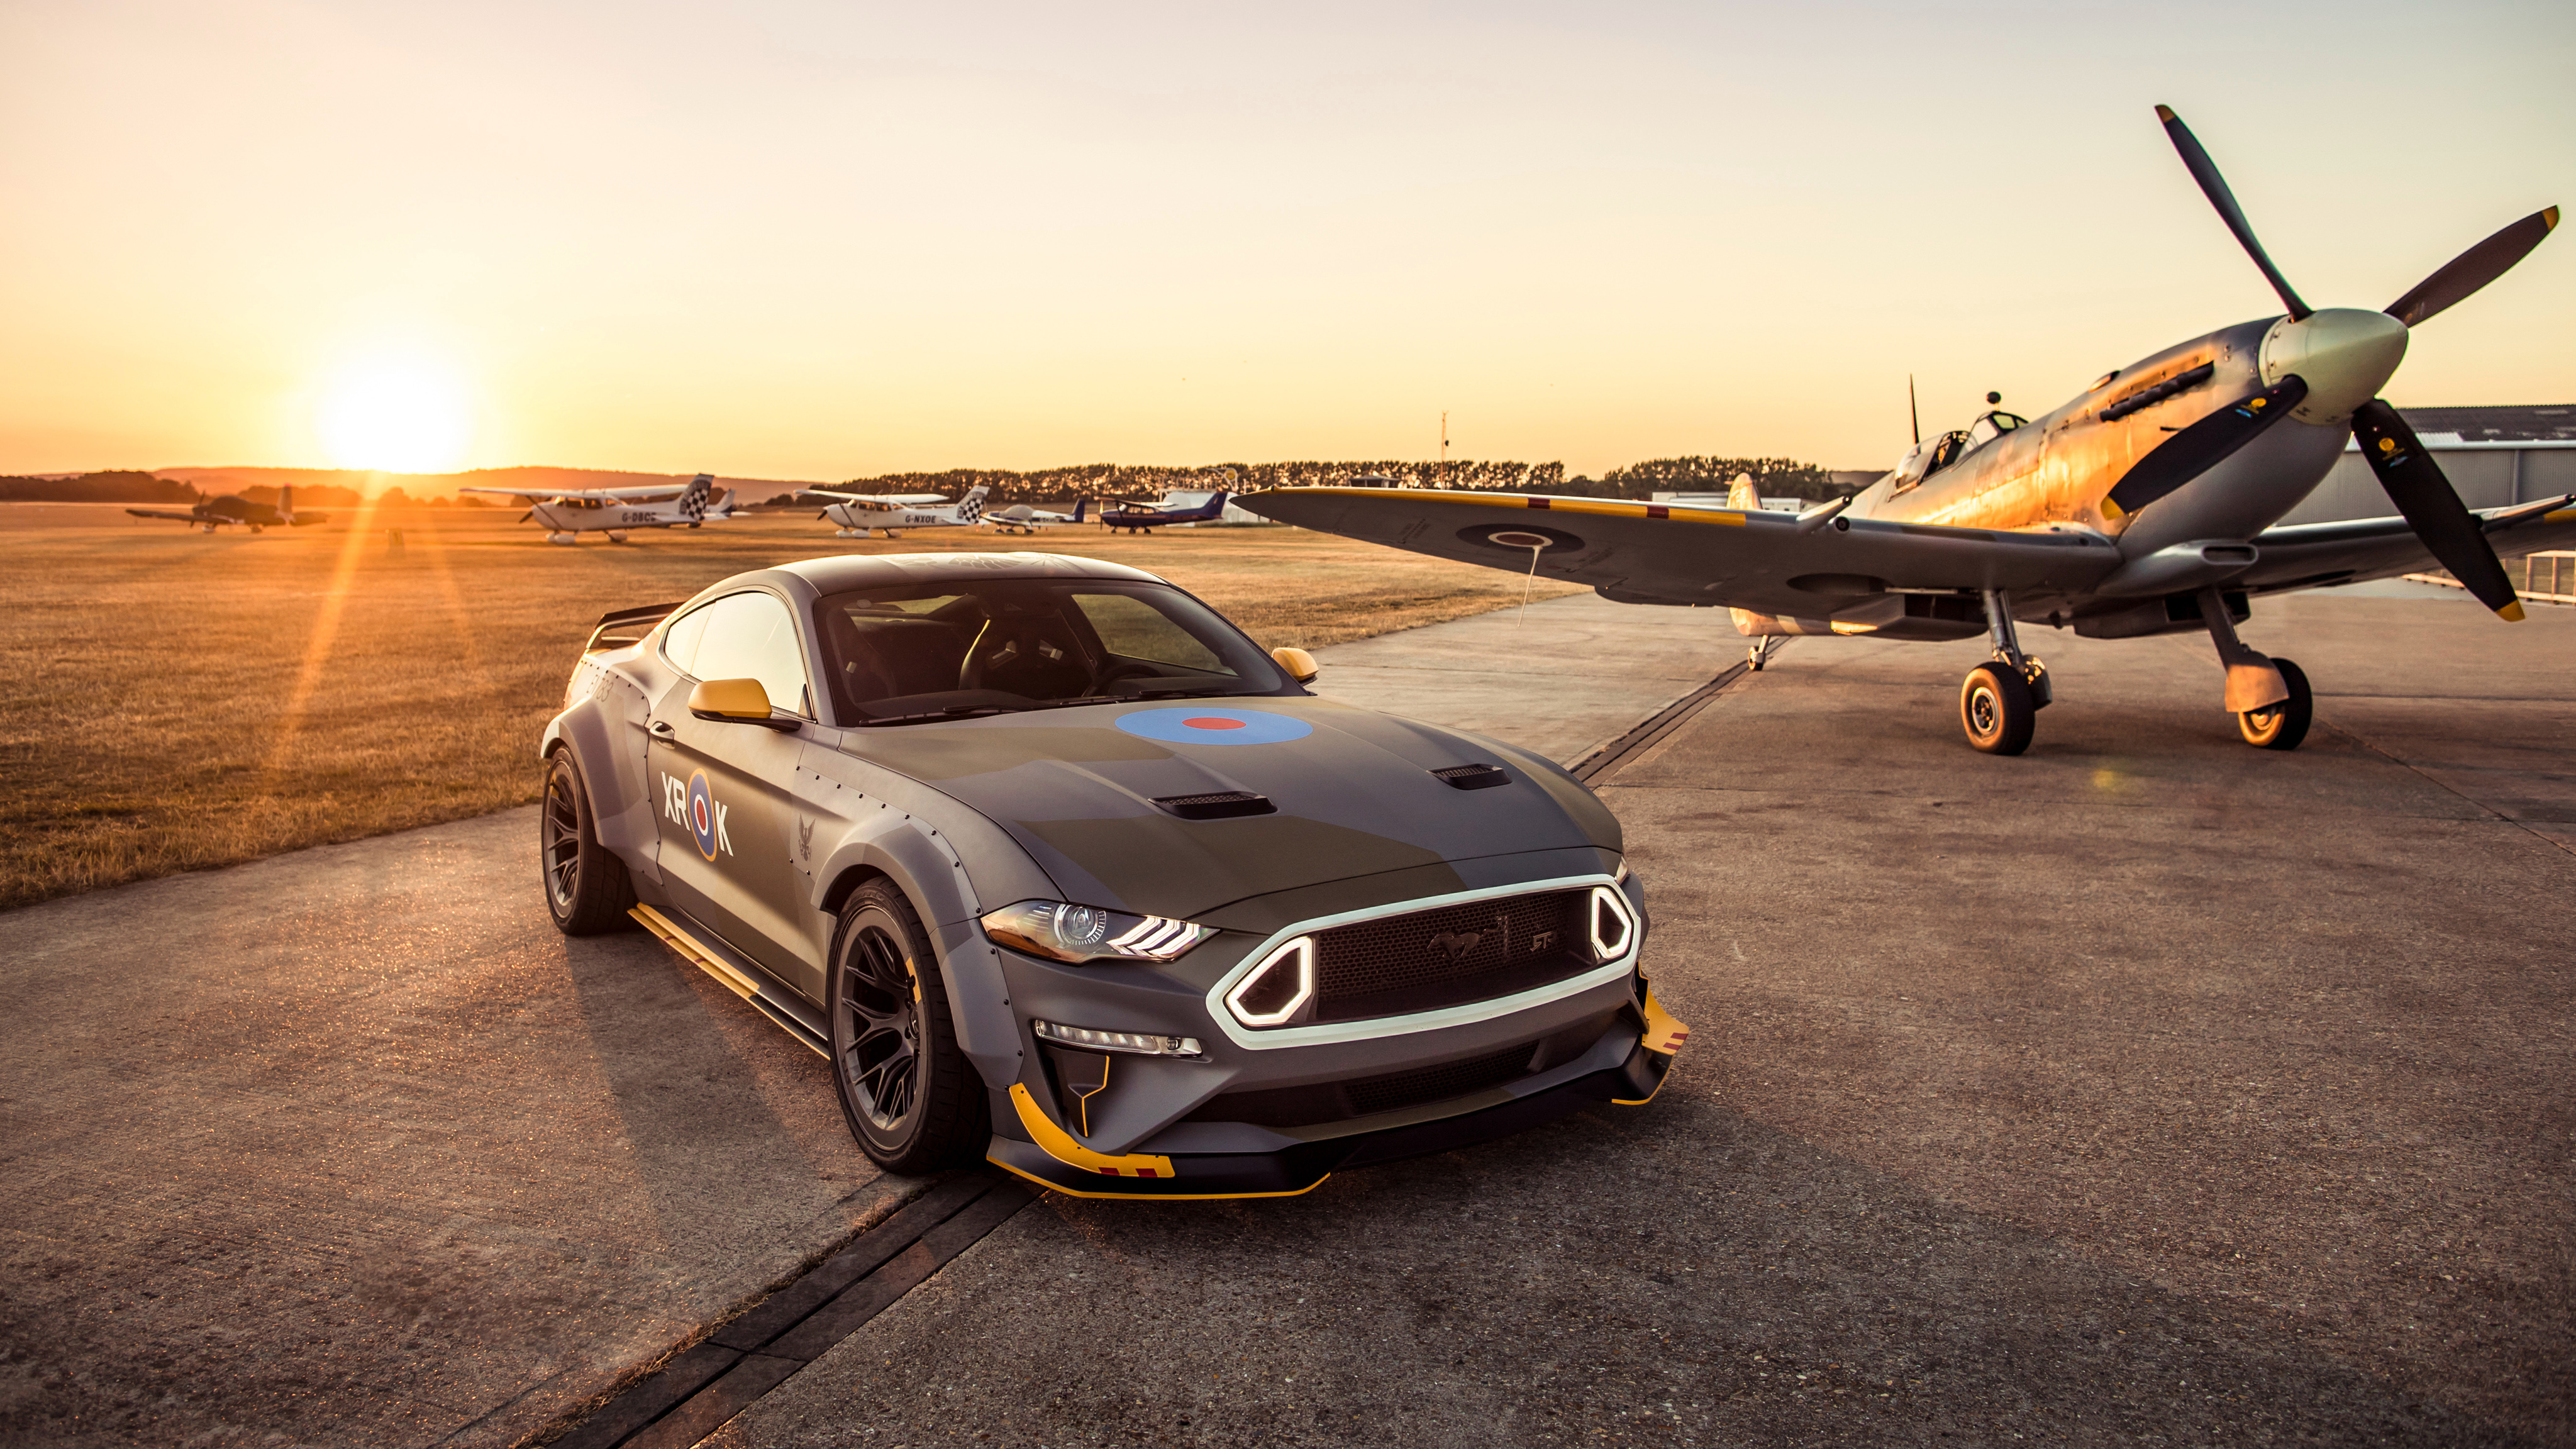 Ford Eagle Squadron Mustang GT 2018 4K 3 Wallpaper | HD Car Wallpapers | ID #10823